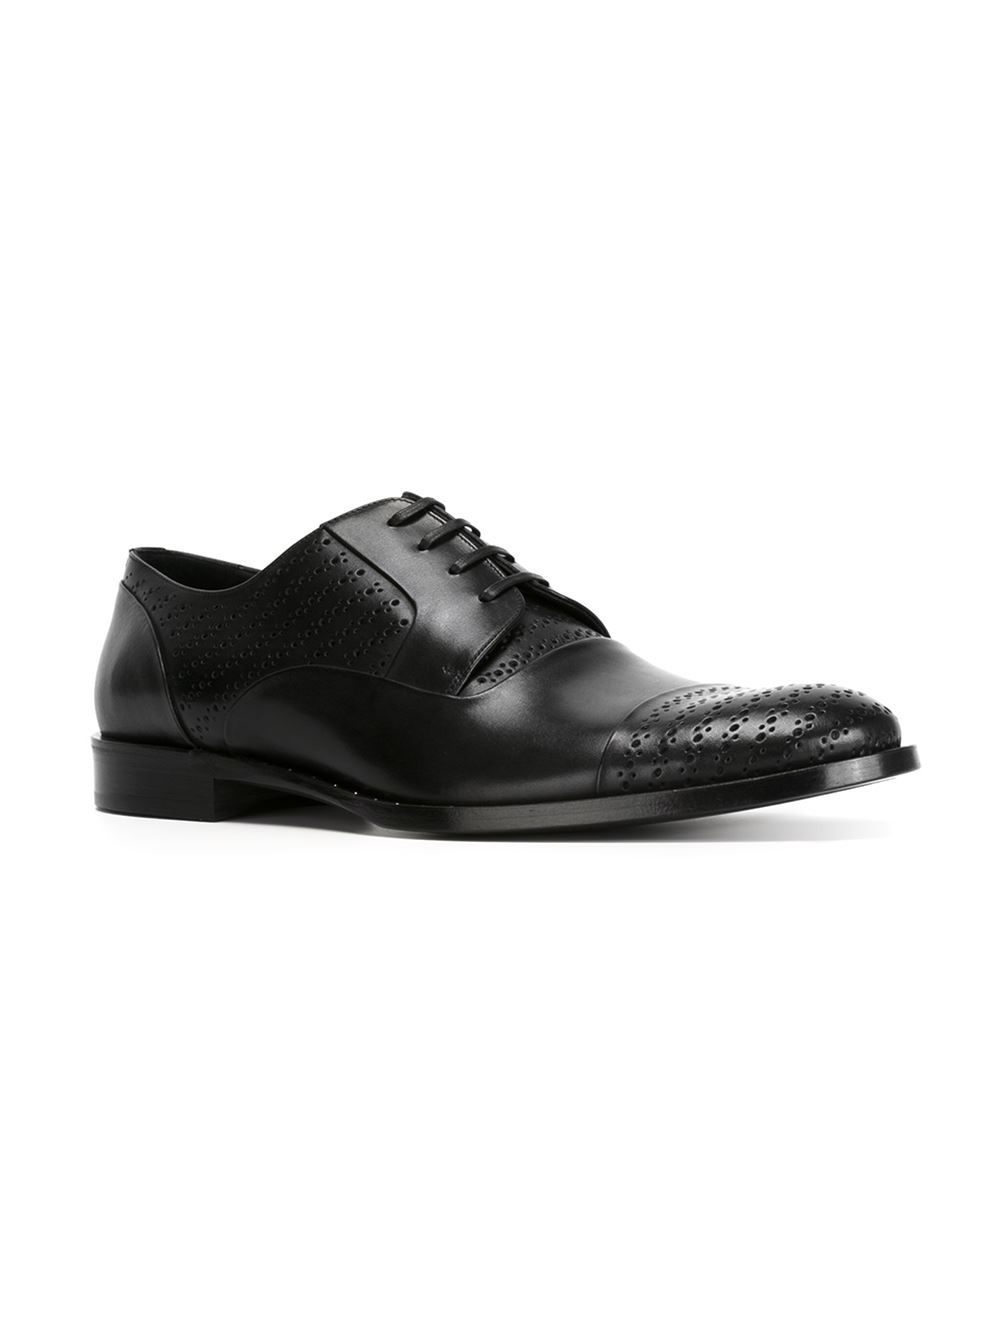 Dolce & Gabbana Leather Perforated Derby Shoes in Black for Men